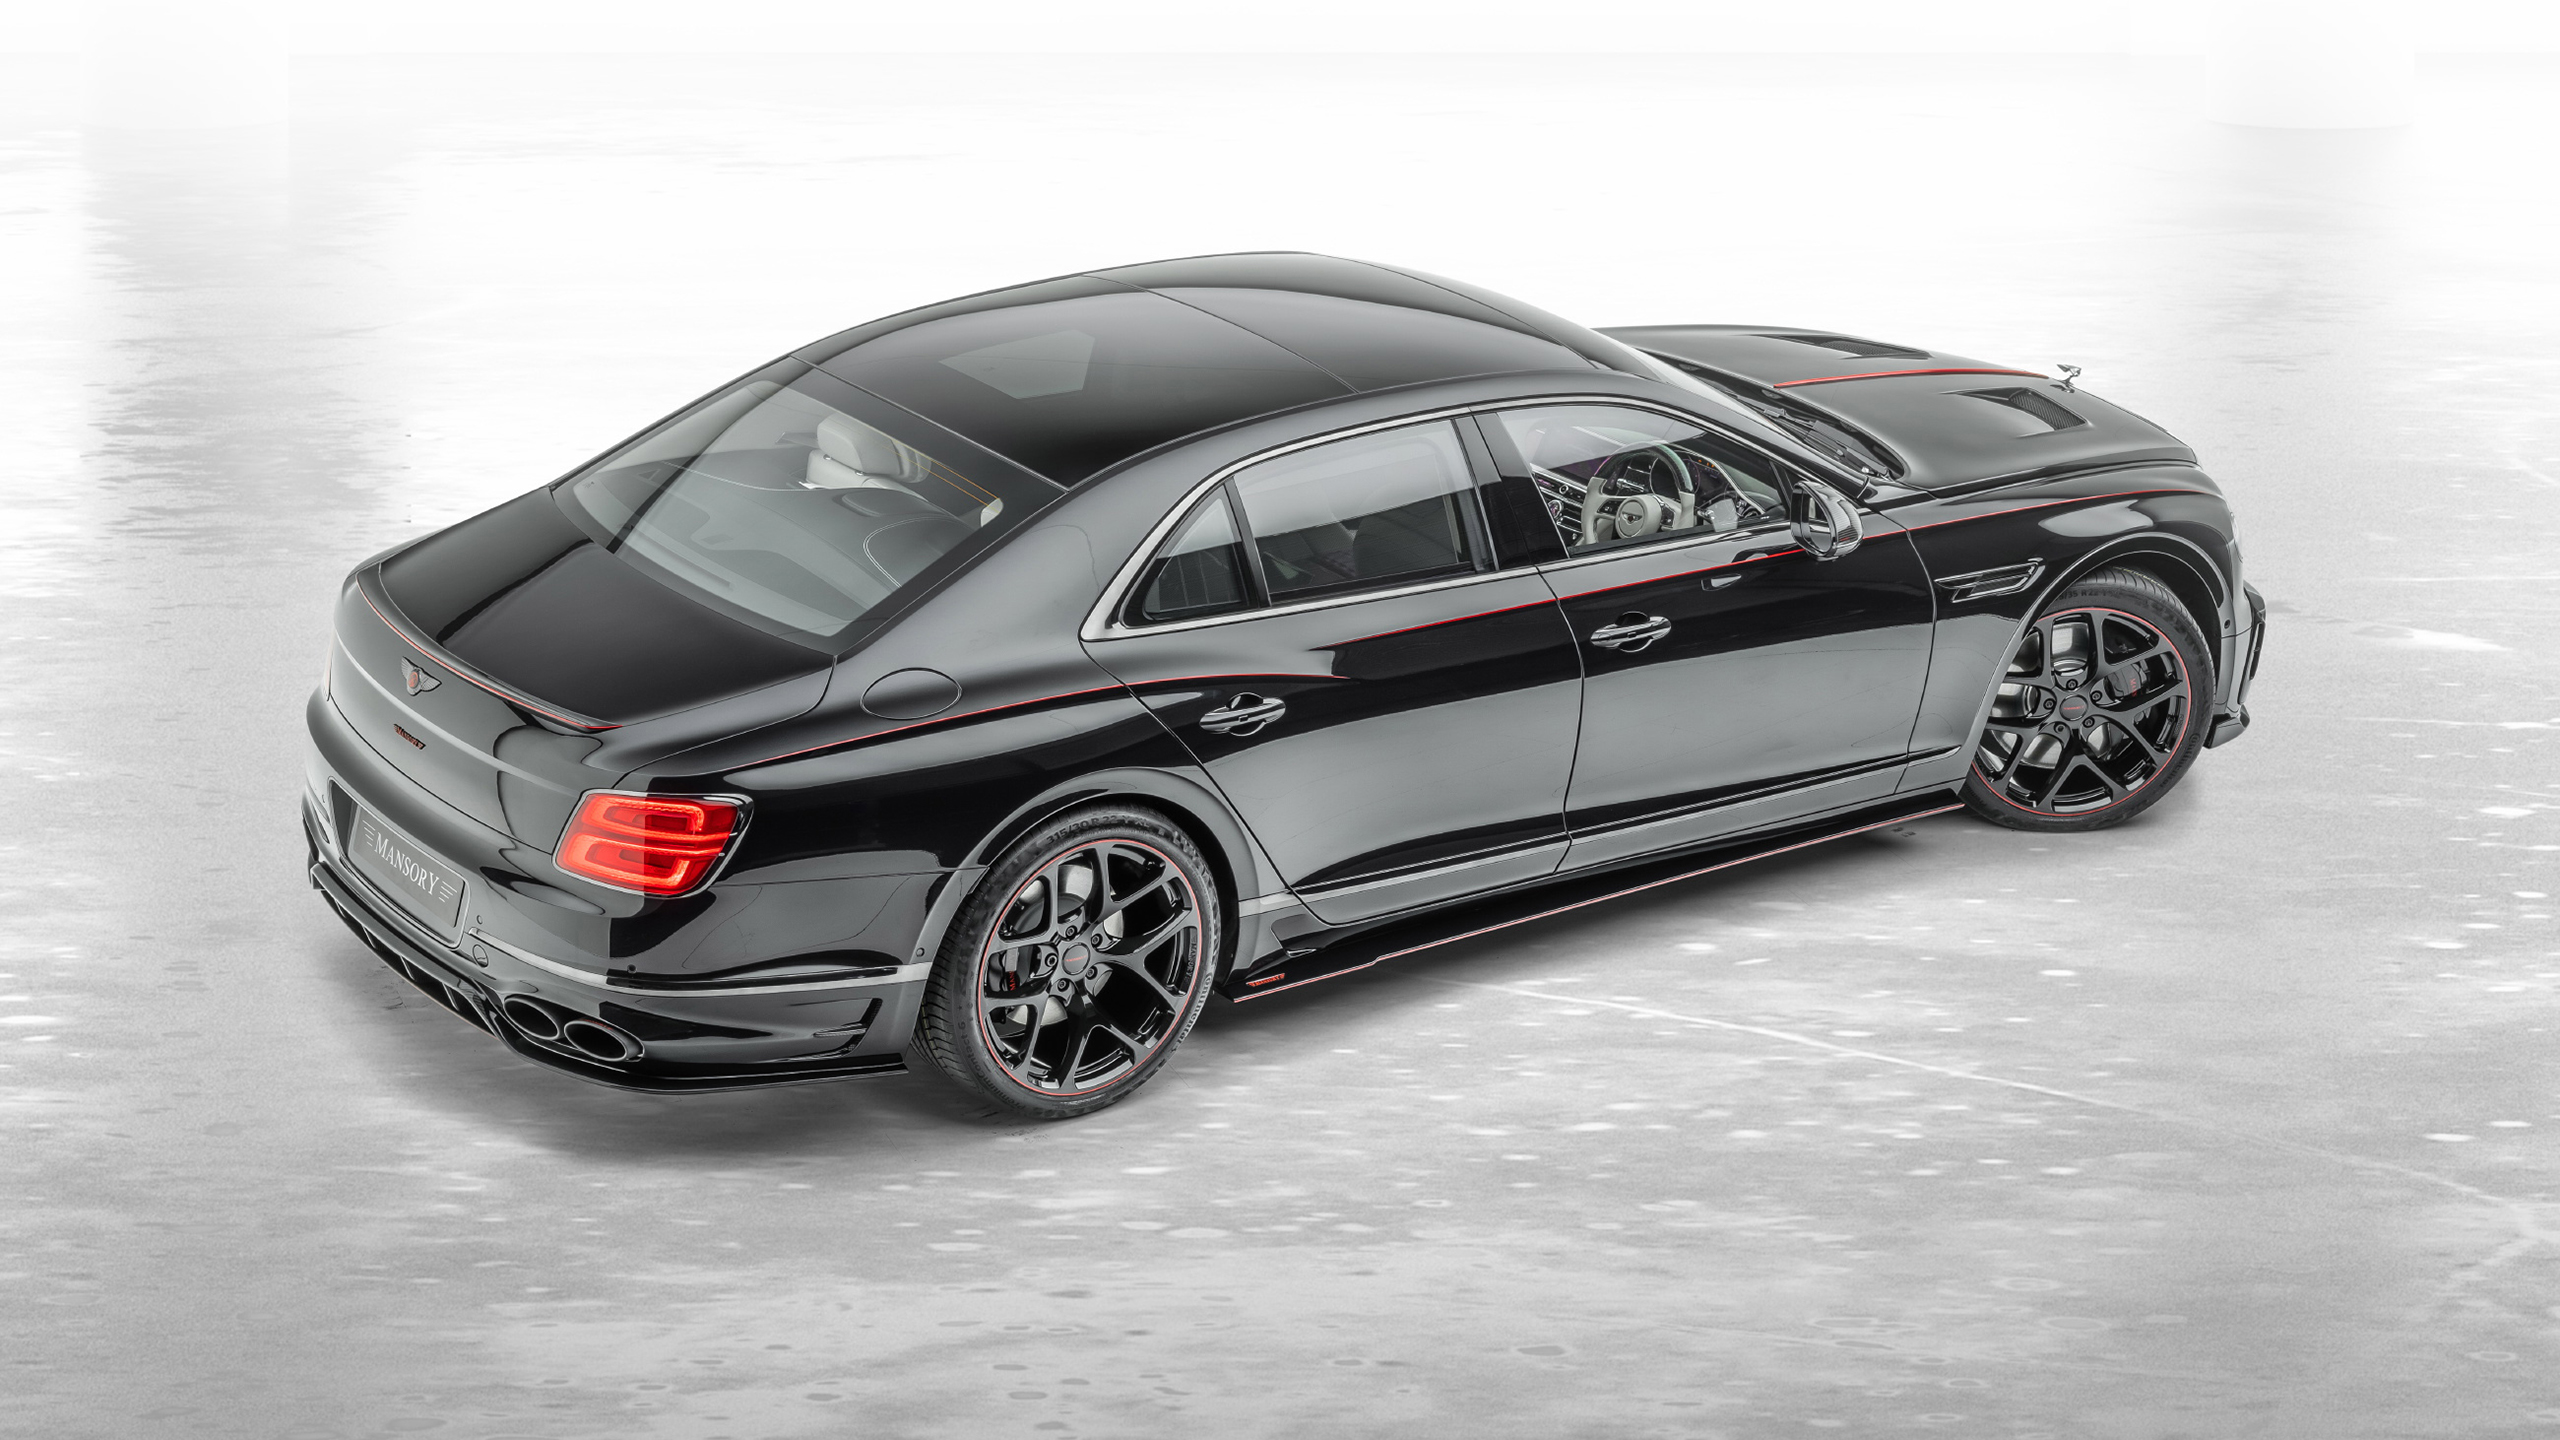 Mansory Bentley Flying Spur 2020 3 Wallpaper Hd Car Wallpapers Id 14525